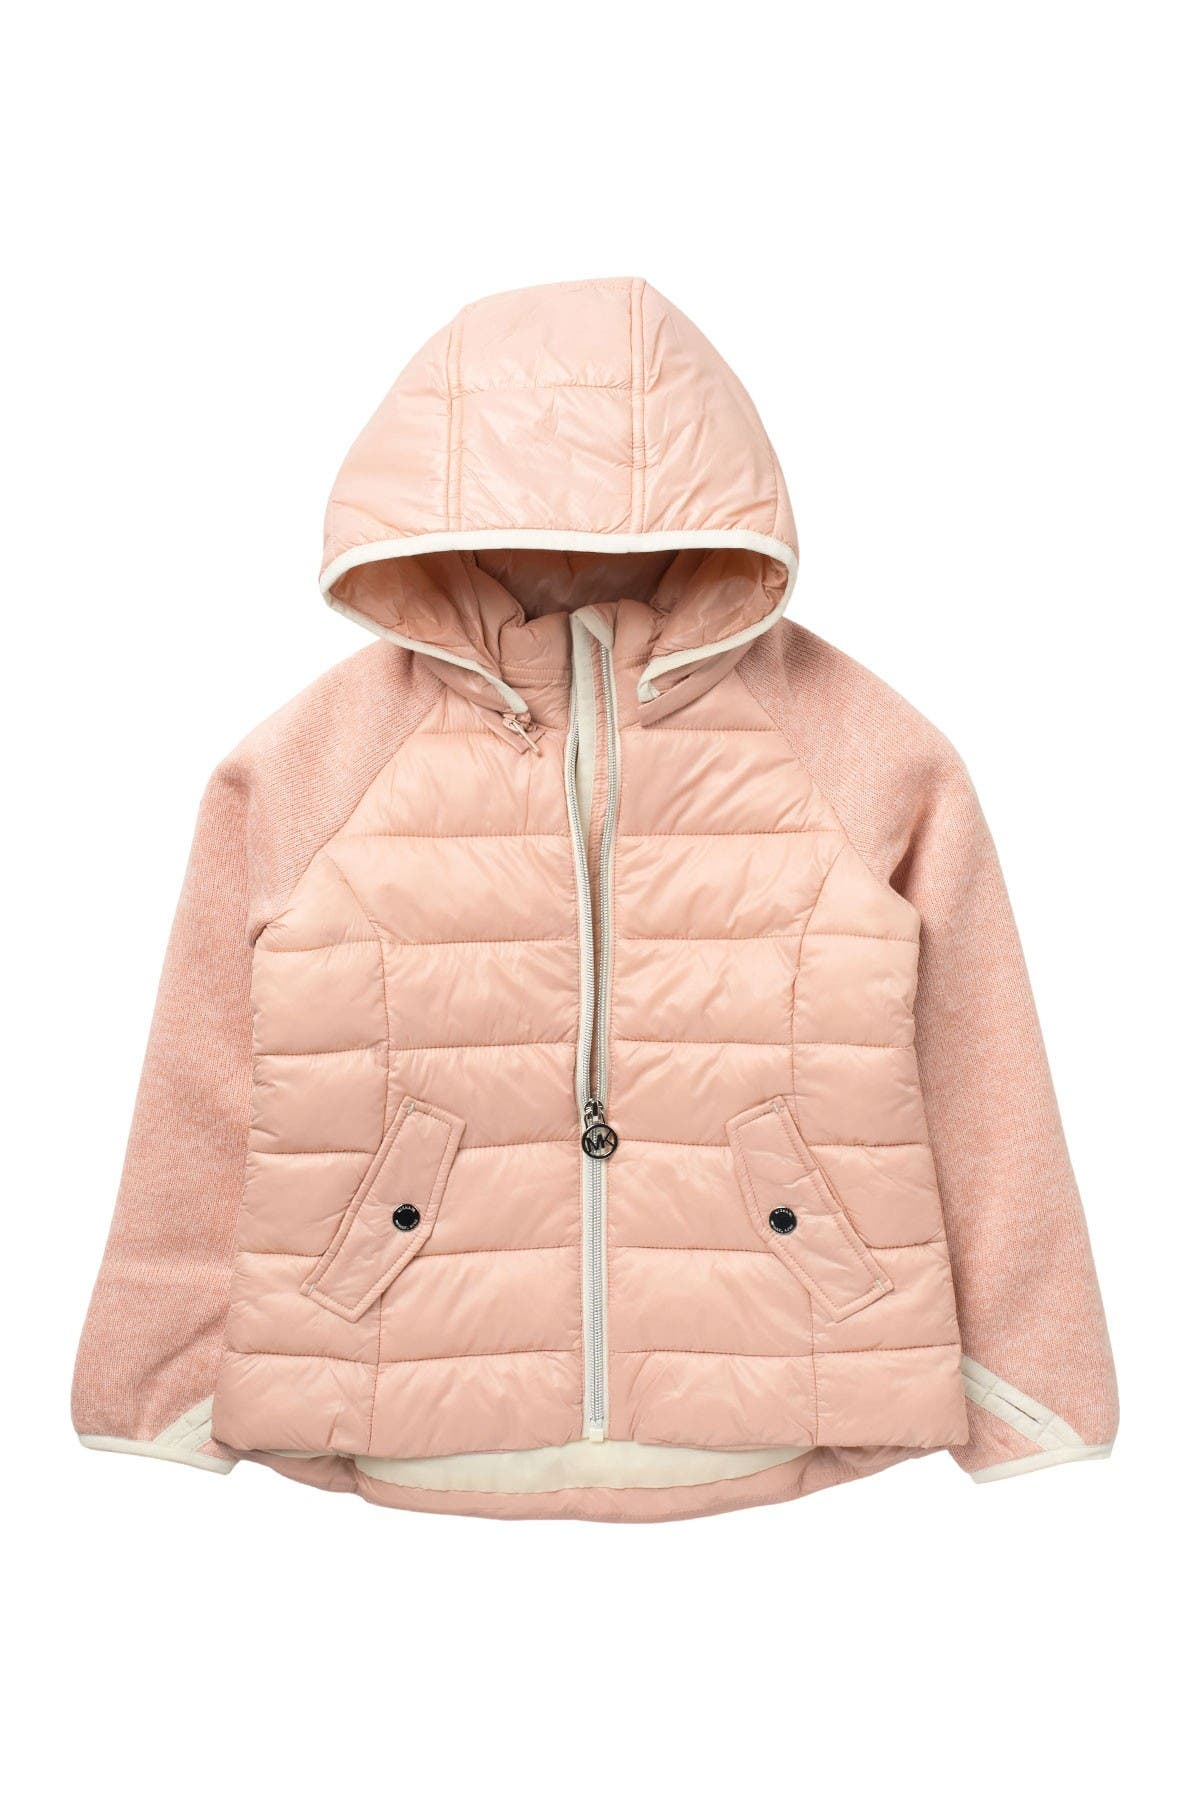 Image of Michael Kors Quilted Hooded Jacket (Little Girls)